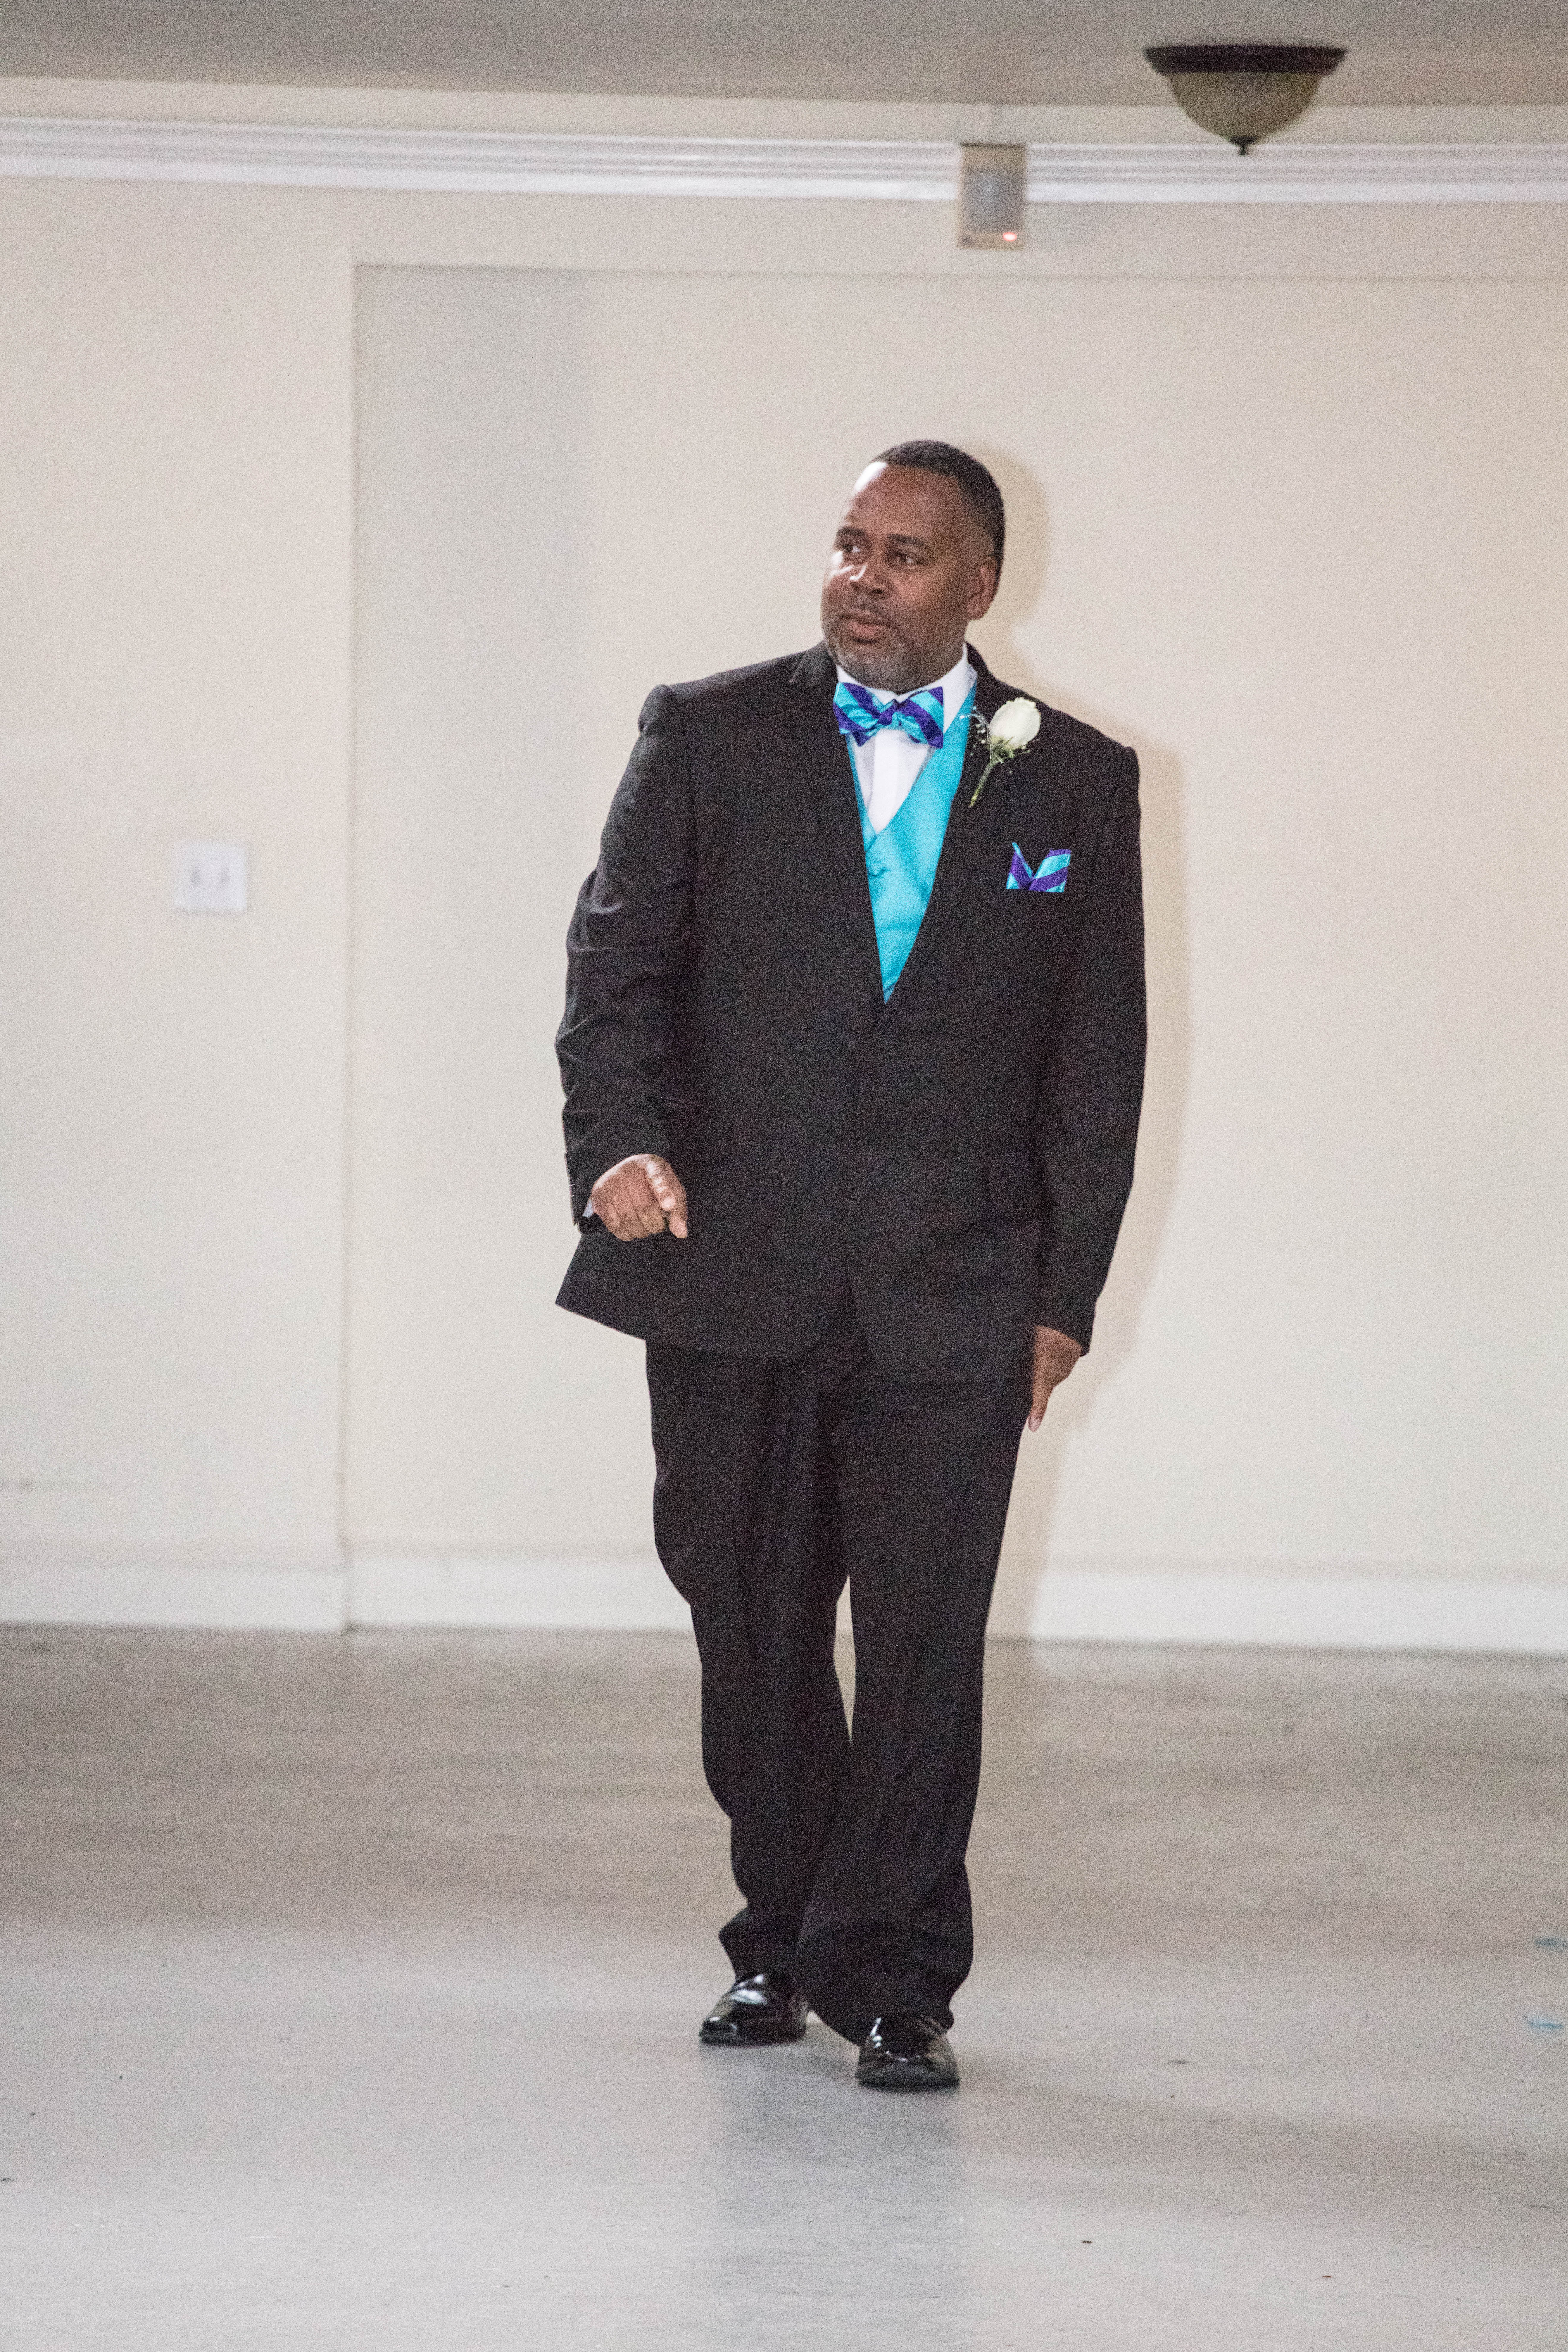 Miller and Yolanda Wilson III Wedding (507)